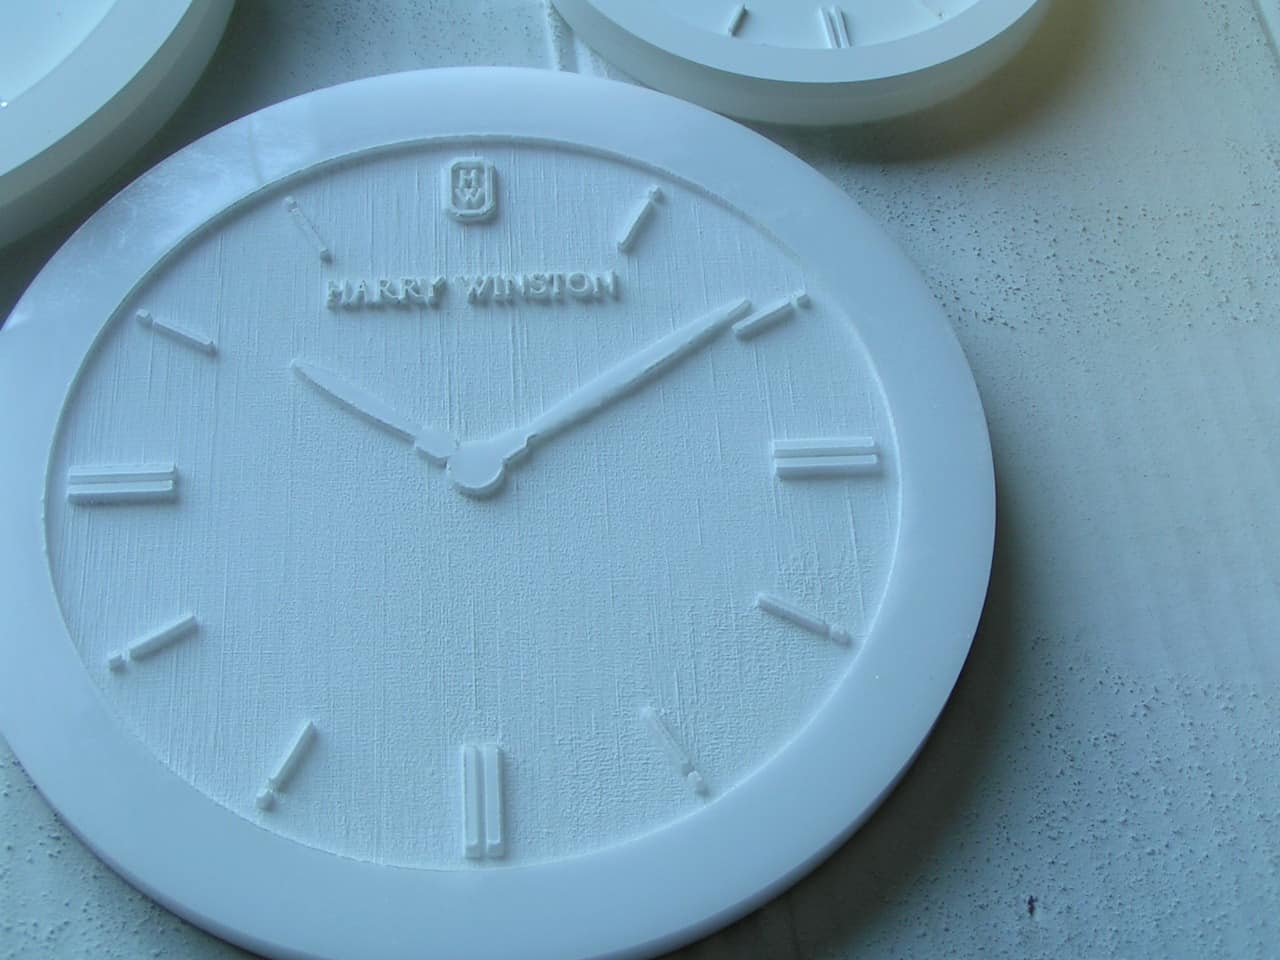 laser cut and engraved signage for Harry Winston watches